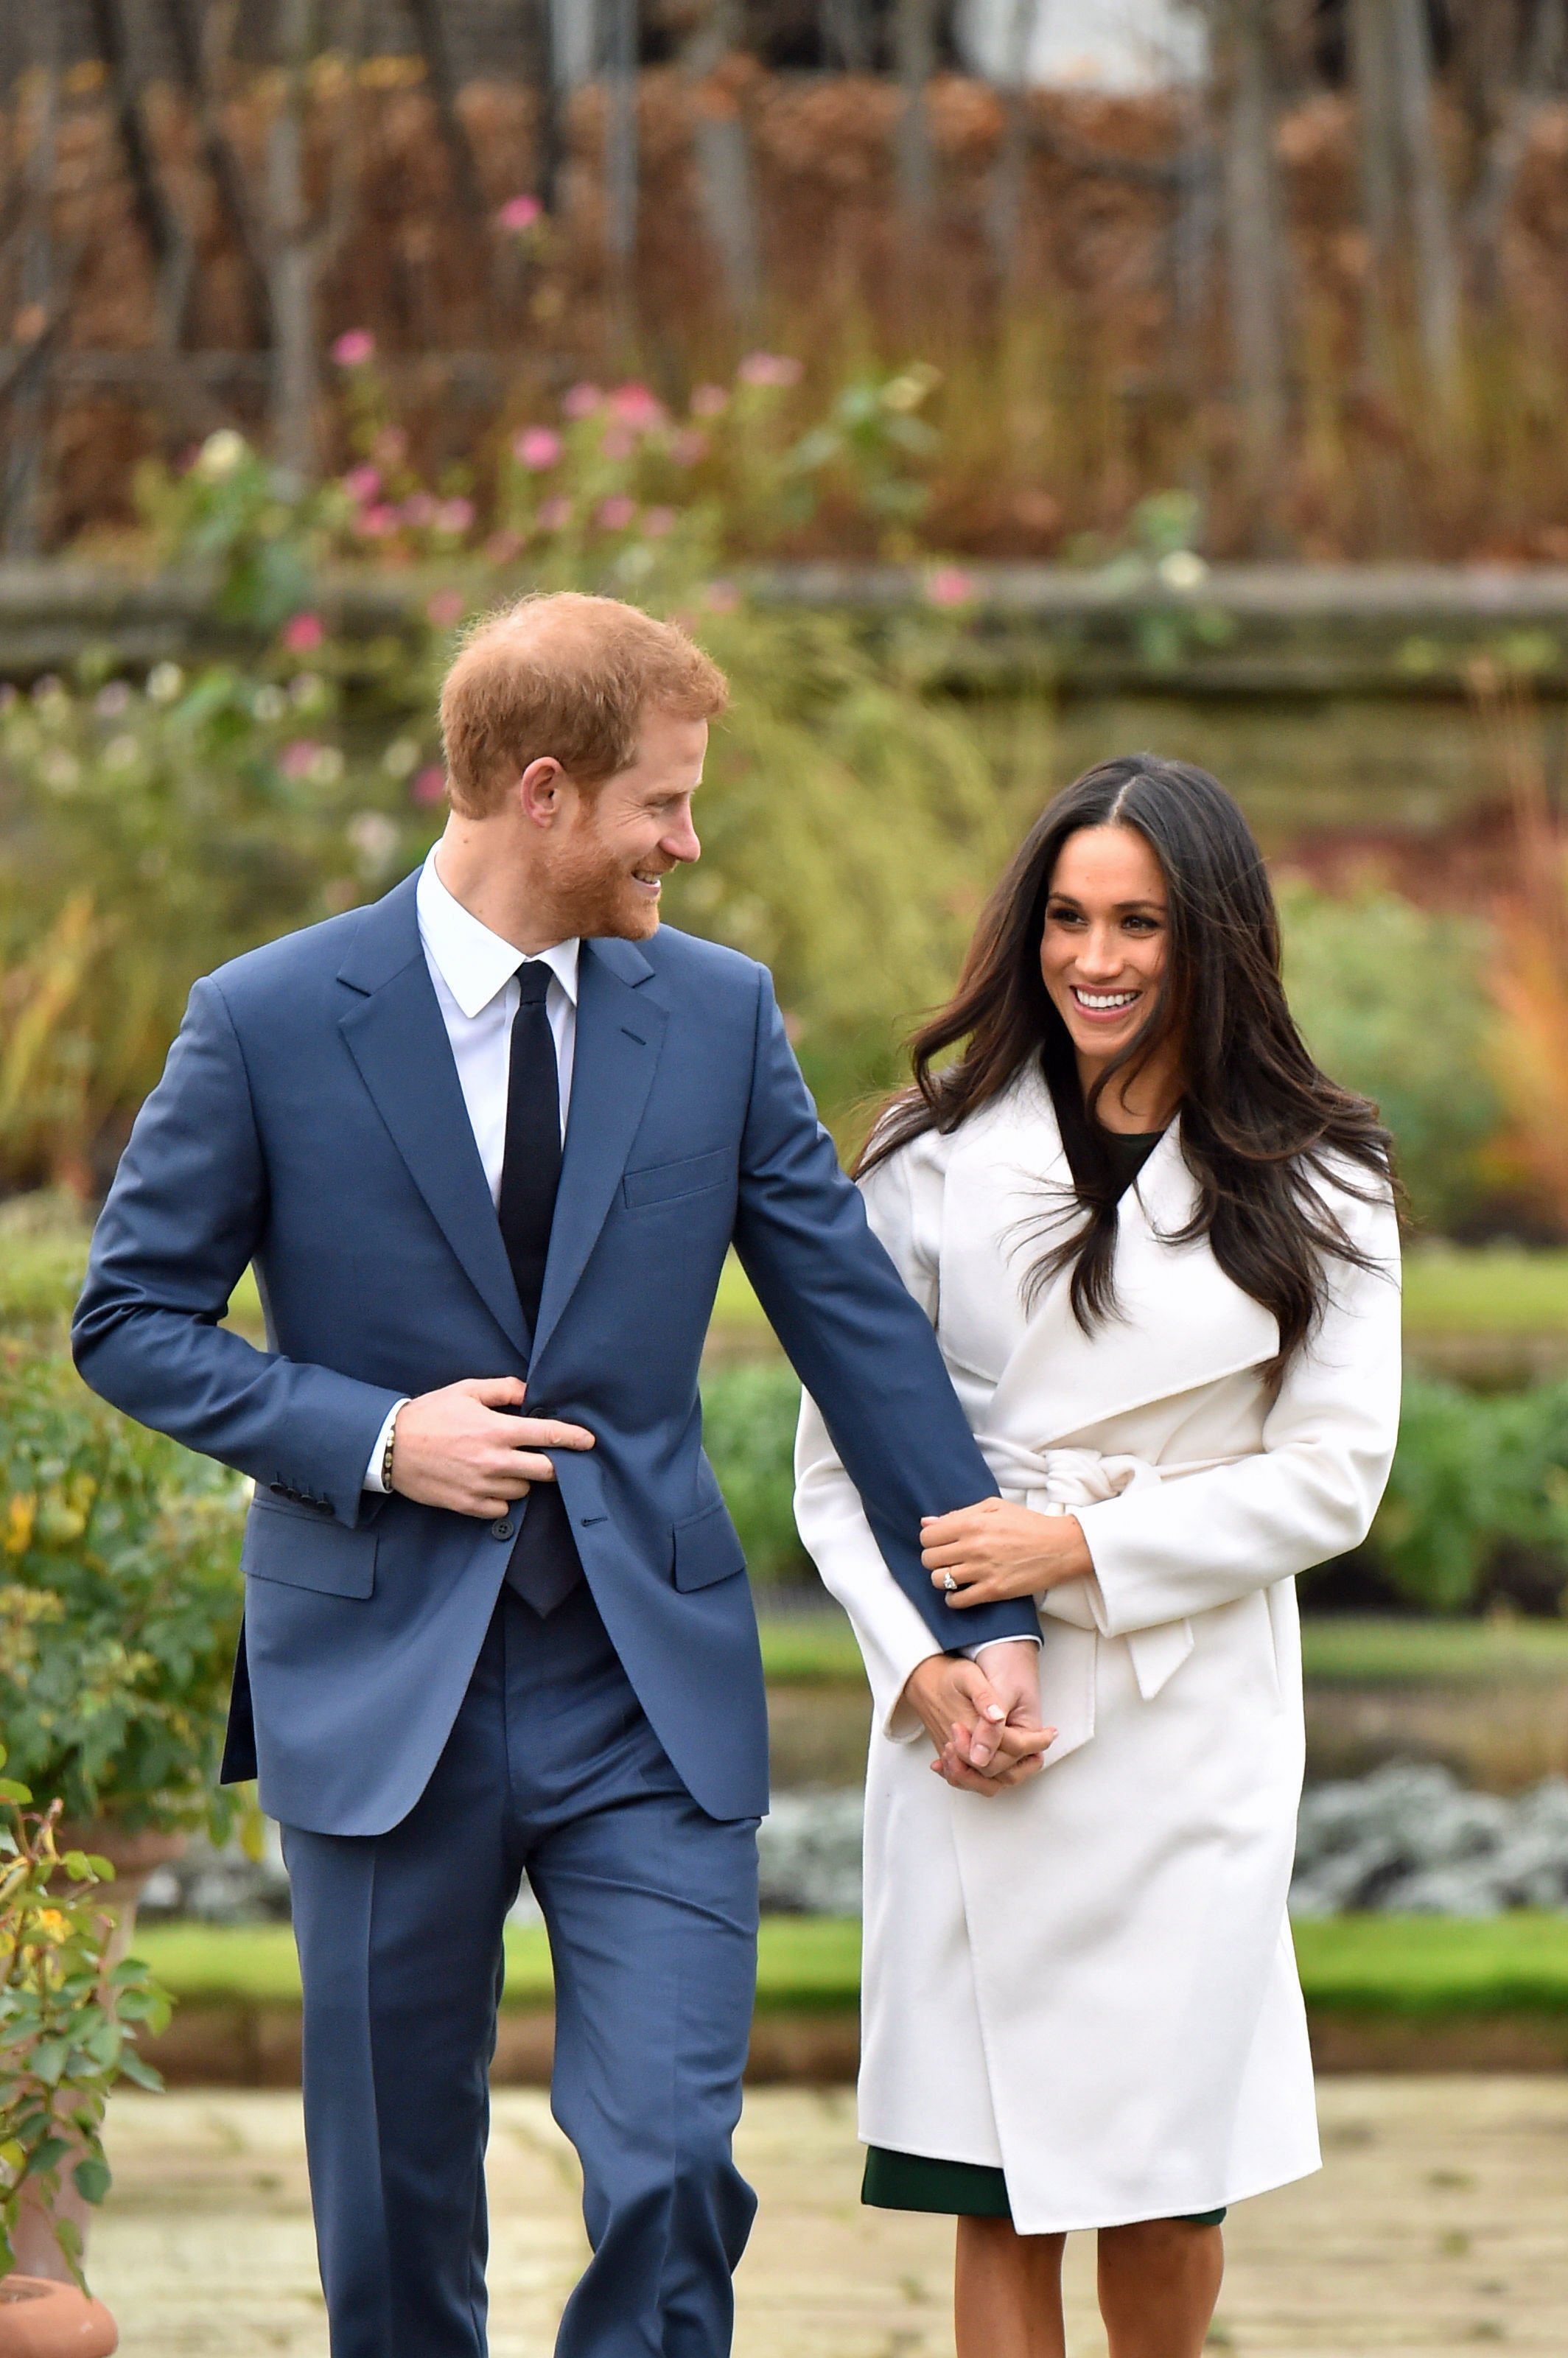 Image Credits: Getty Images / Dominic Lipinski / PA Images | Prince Harry and Meghan Markle in the Sunken Garden at Kensington Palace, London, after the announcement of their engagement.